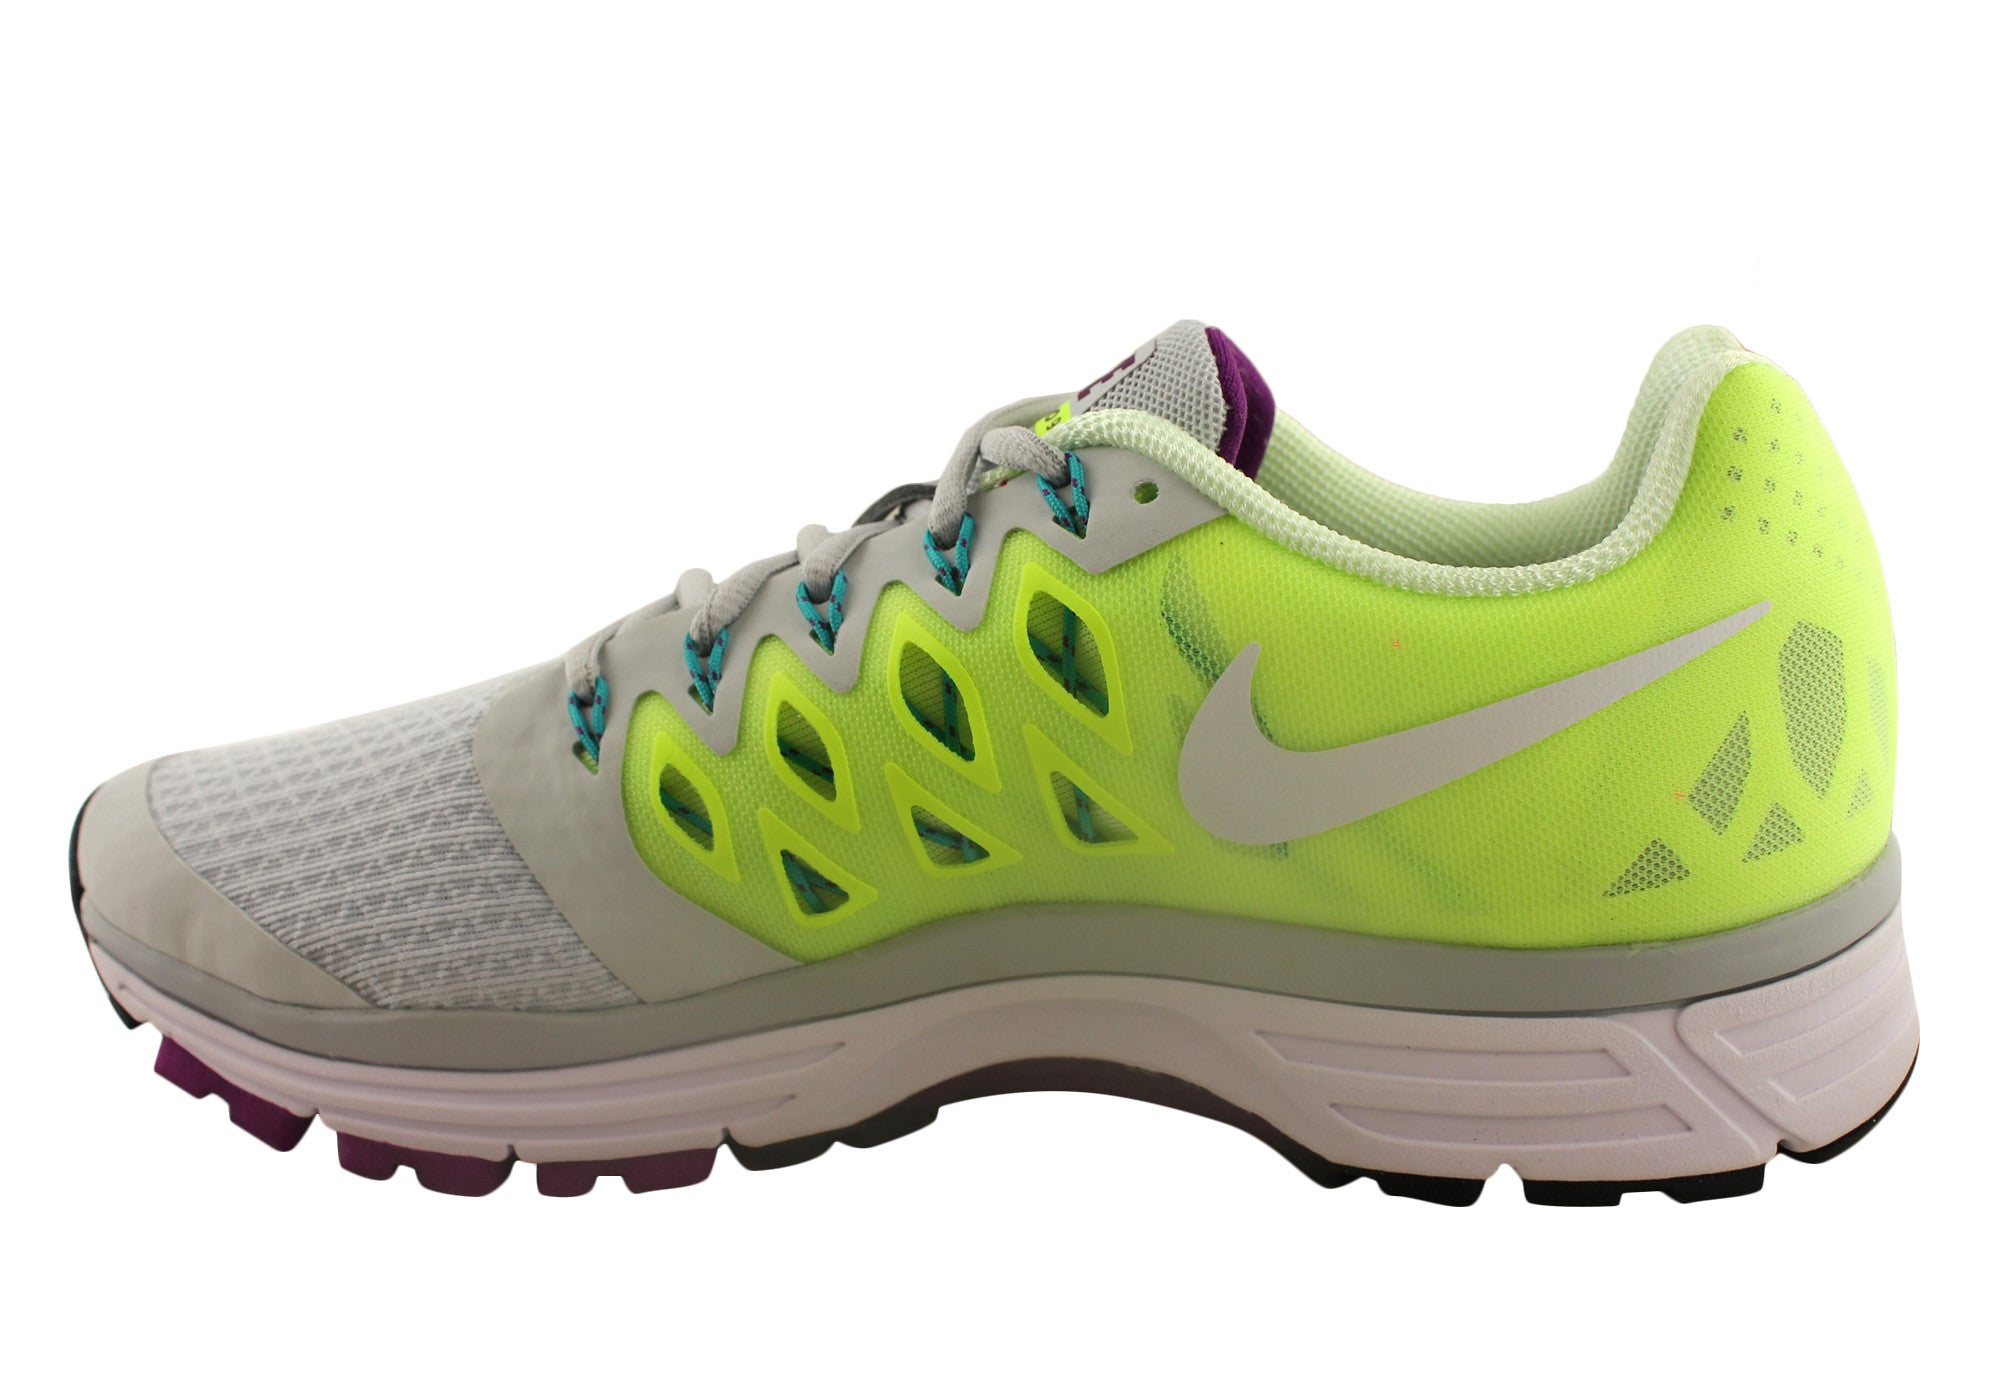 1b70ce36c2c08 Nike Womens Zoom Vomero 9 Running Shoes (Wide Width)